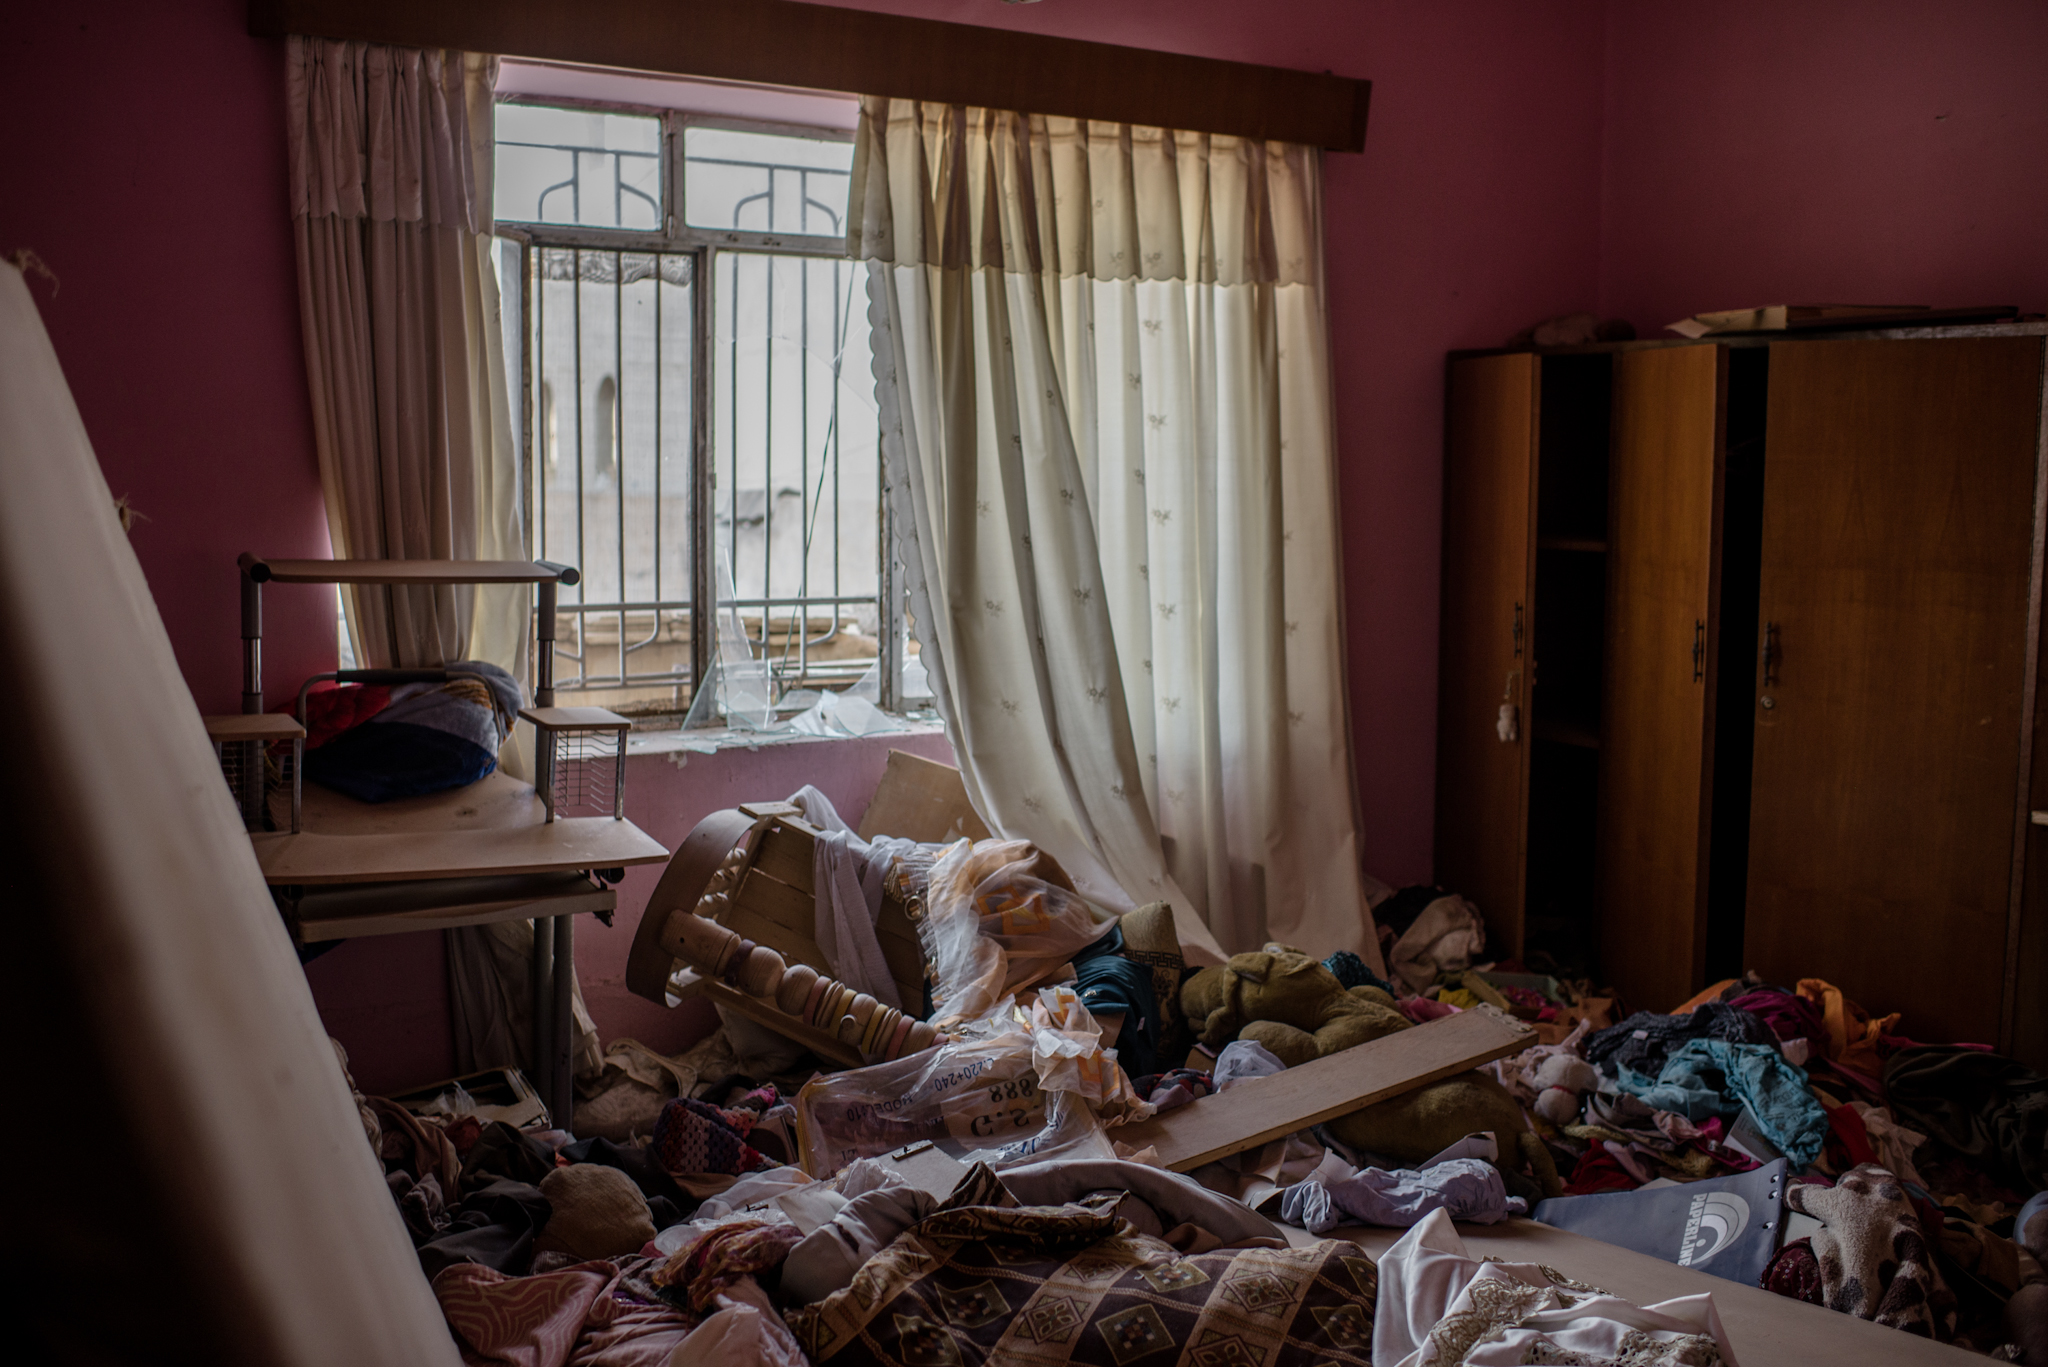 The interior of a ransacked house in the city of Bakhdida on October 30, 2016.